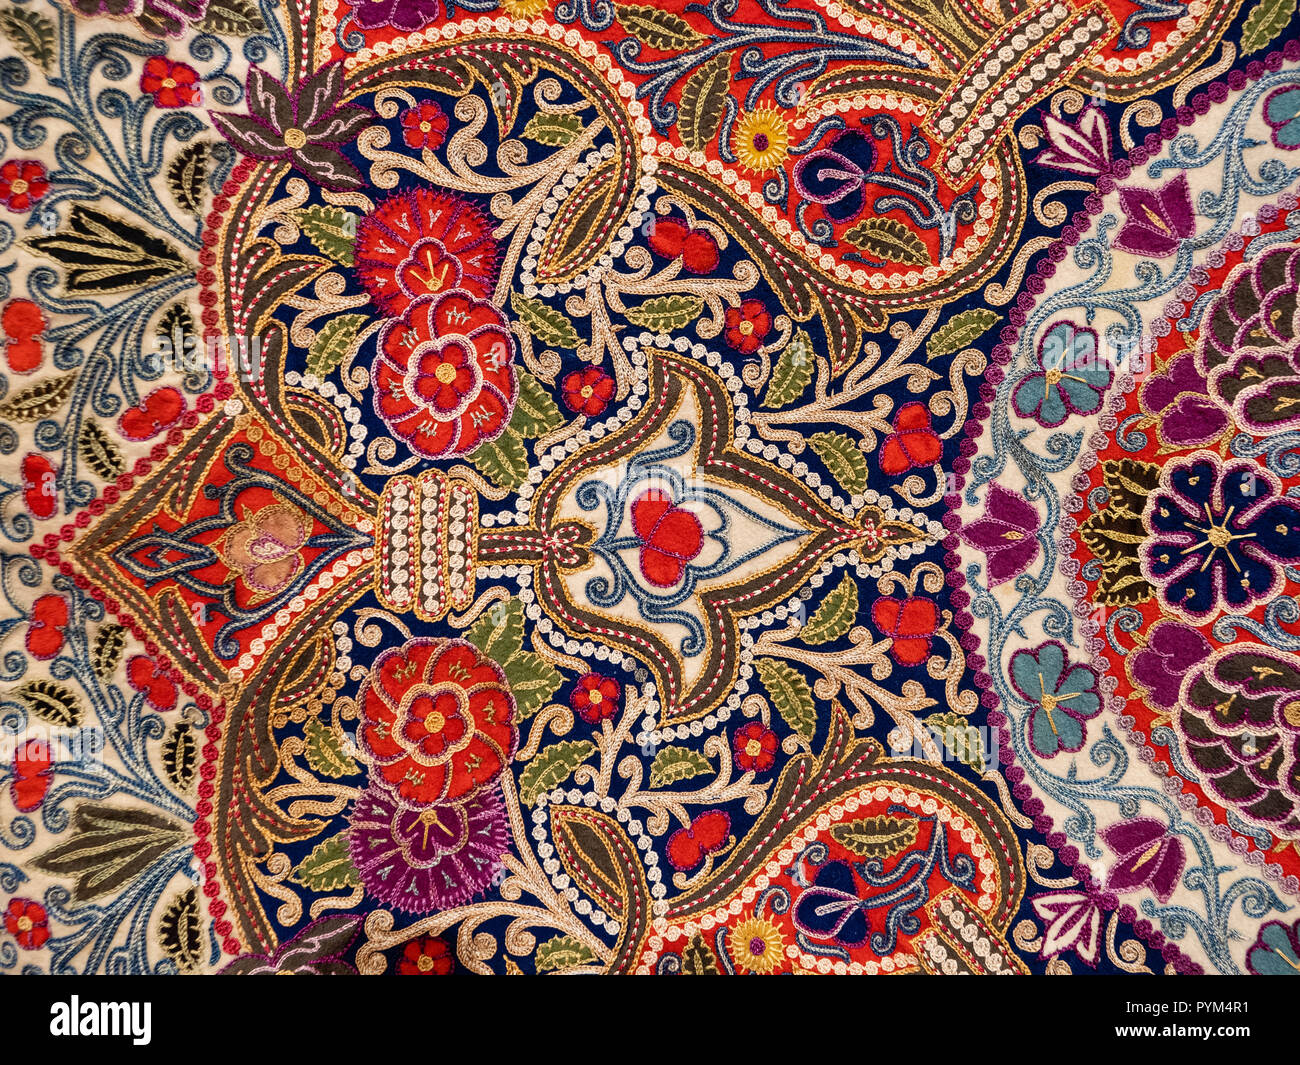 Detail of intricately embroidered Indian shawl housed in the Telfair Academy Museum in Savannah Georgia USA - Stock Image